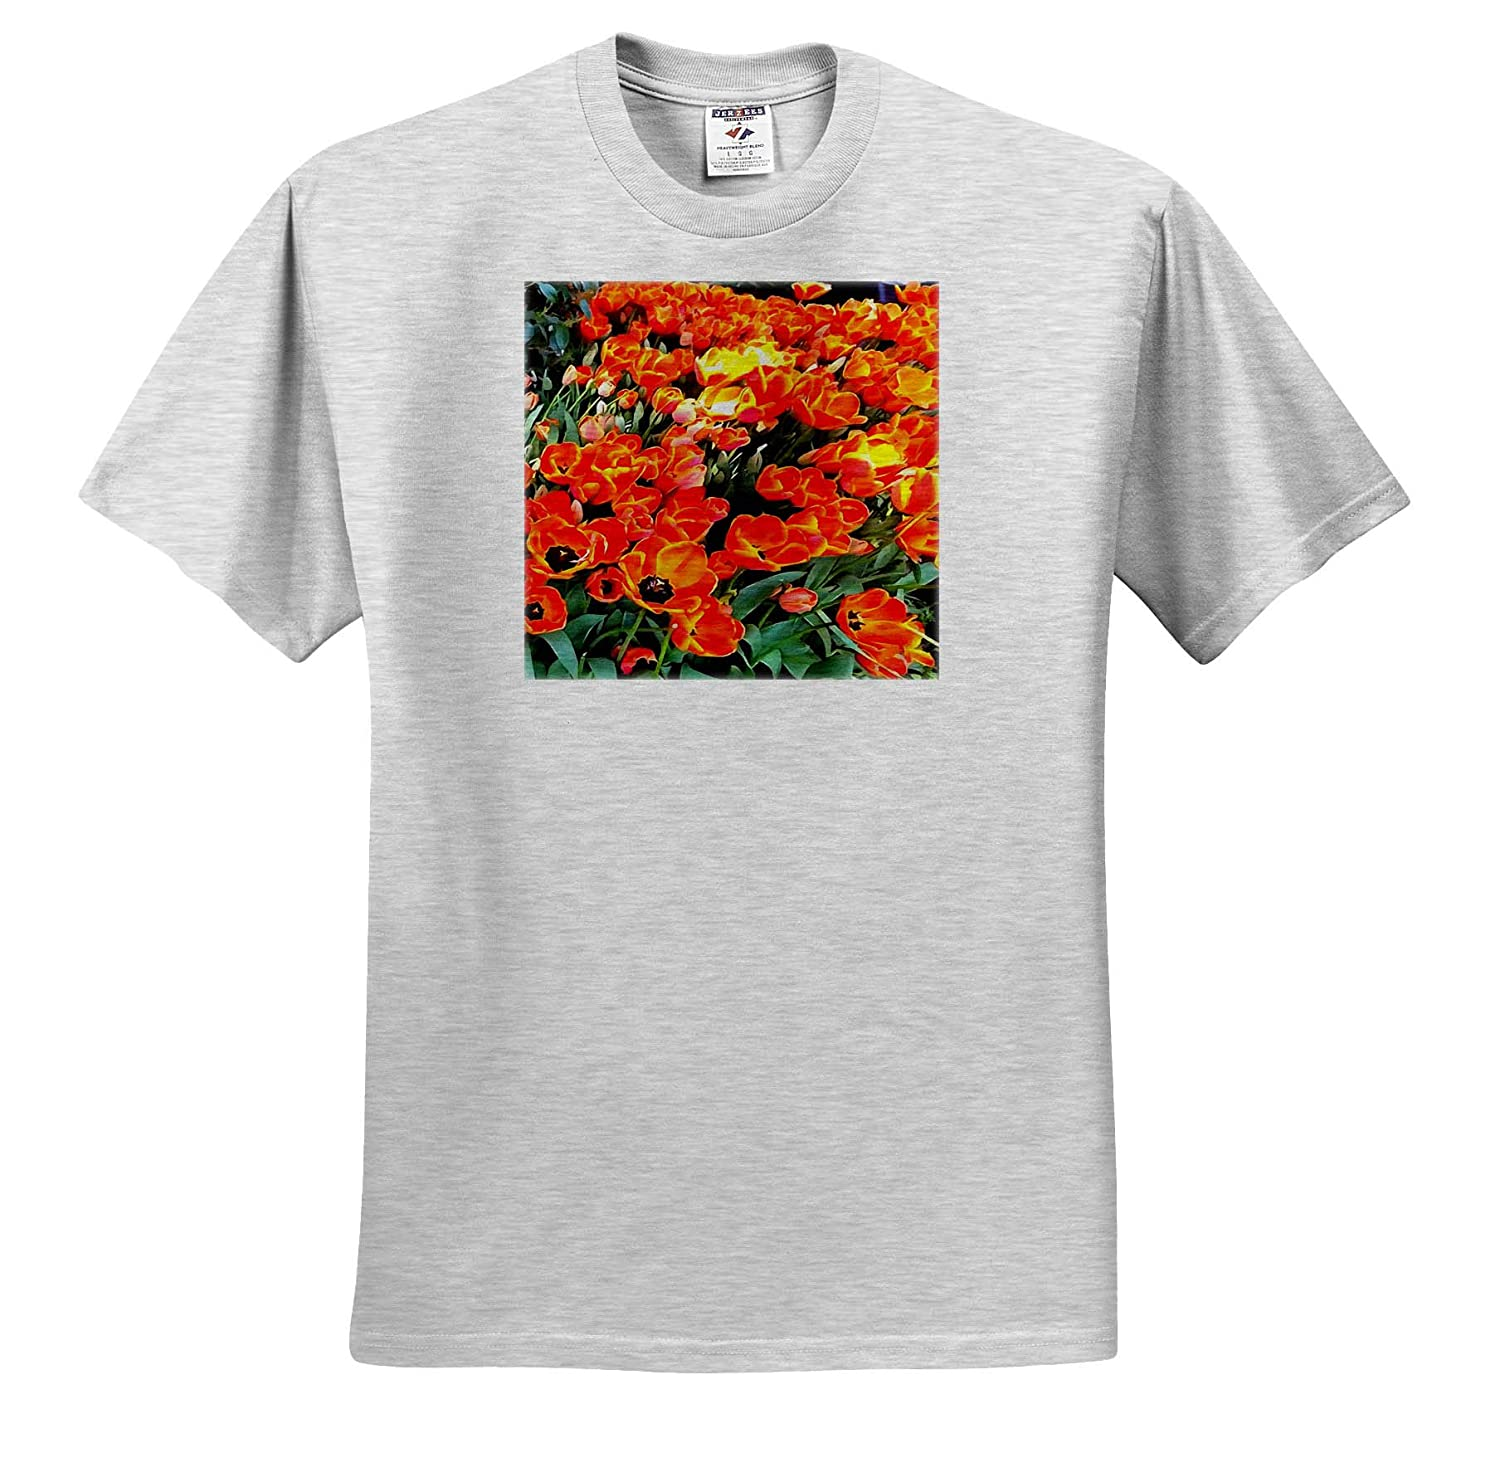 3dRose Taiche Tulips ts/_315655 Acrylic Painting Tulips On Fire Adult T-Shirt XL